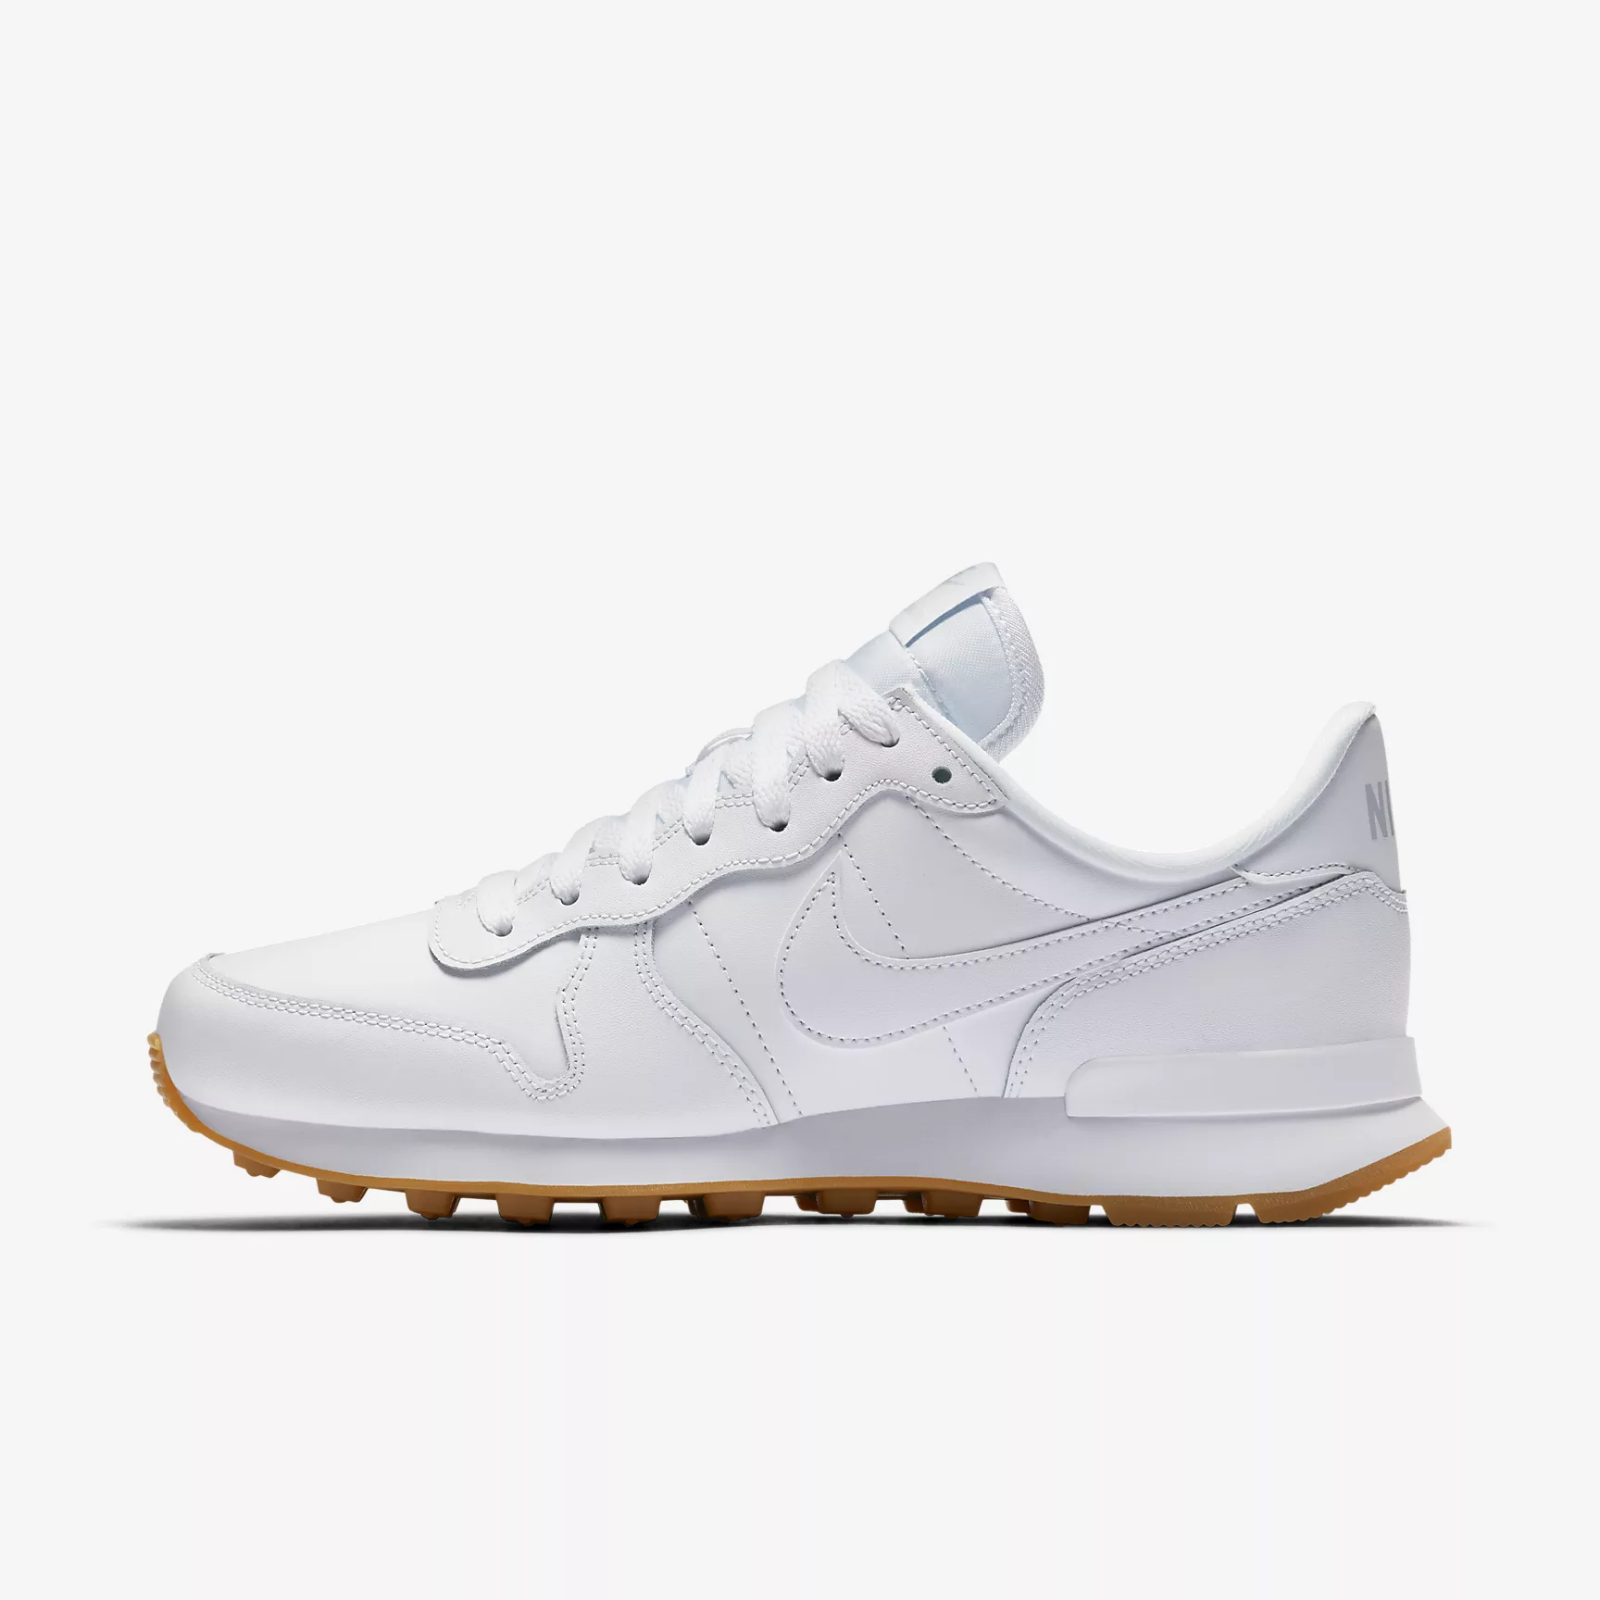 NIKE INTERNATIONALIST - Weiß   GUM   braun - 828407 103 - EU 43 - UK 8